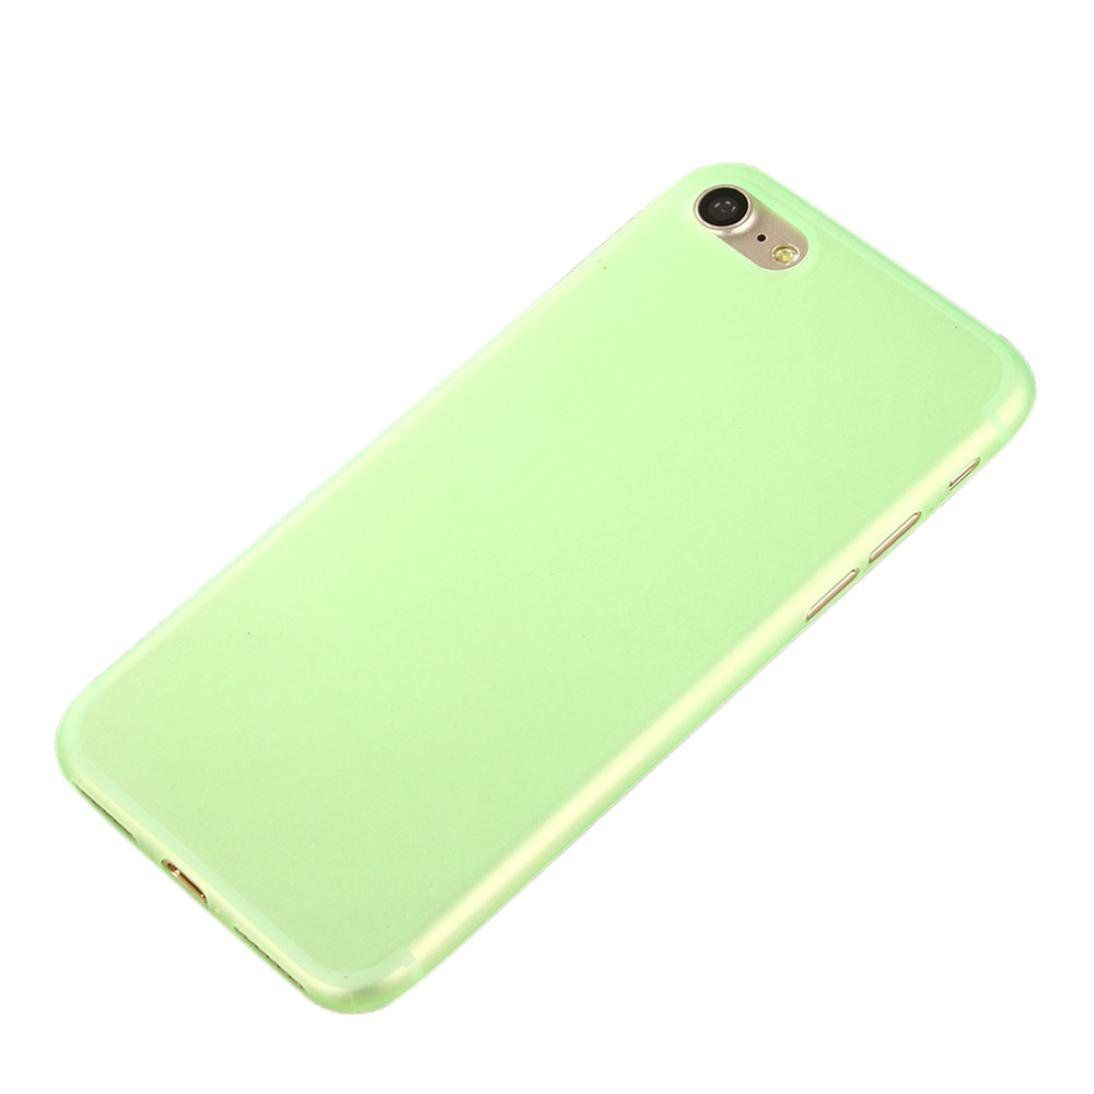 iPhone 7 Case, Leoy88 Slim Colorful Case Cover for IPhone 7 4.7 inch (Green) -- Awesome products selected by Anna Churchill